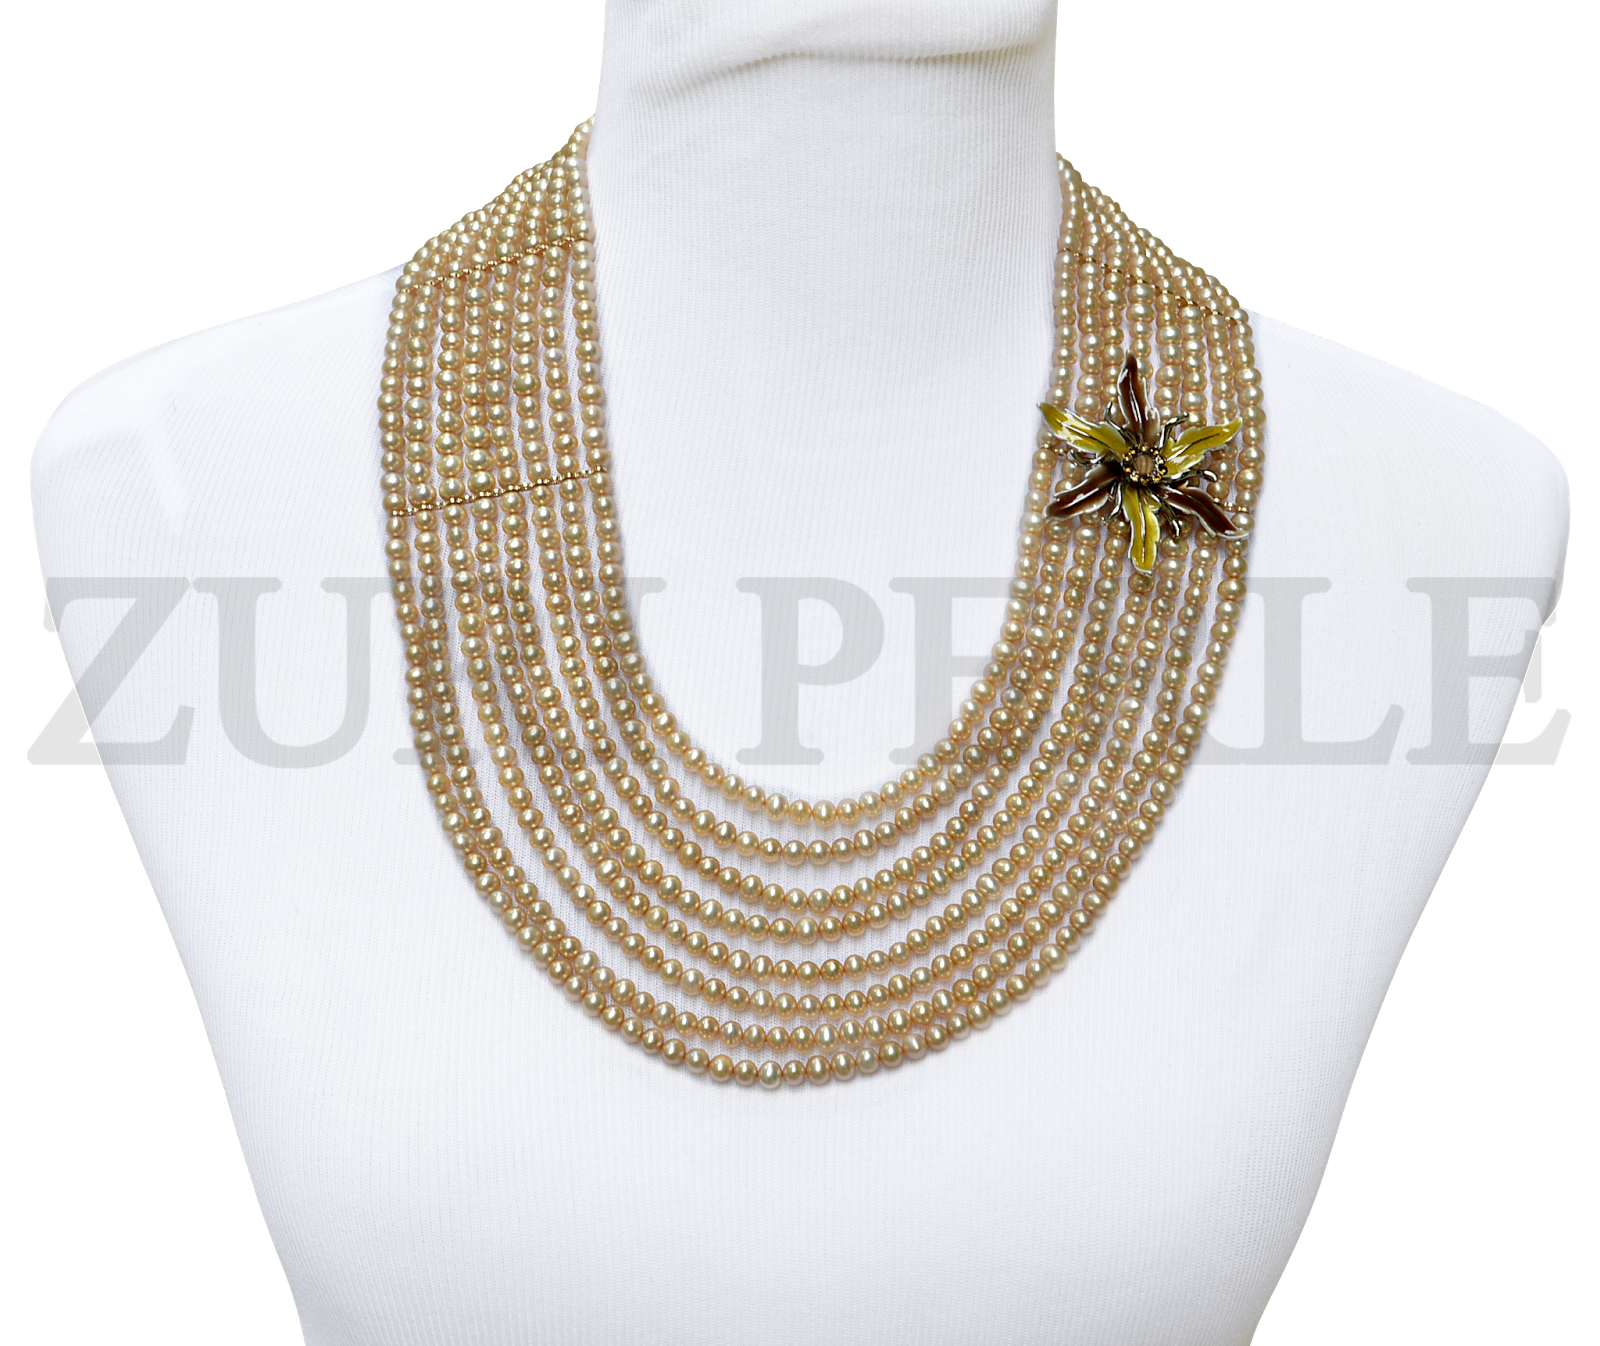 Champagne fresh water pearls Zuri Perle necklace earrings bracelet